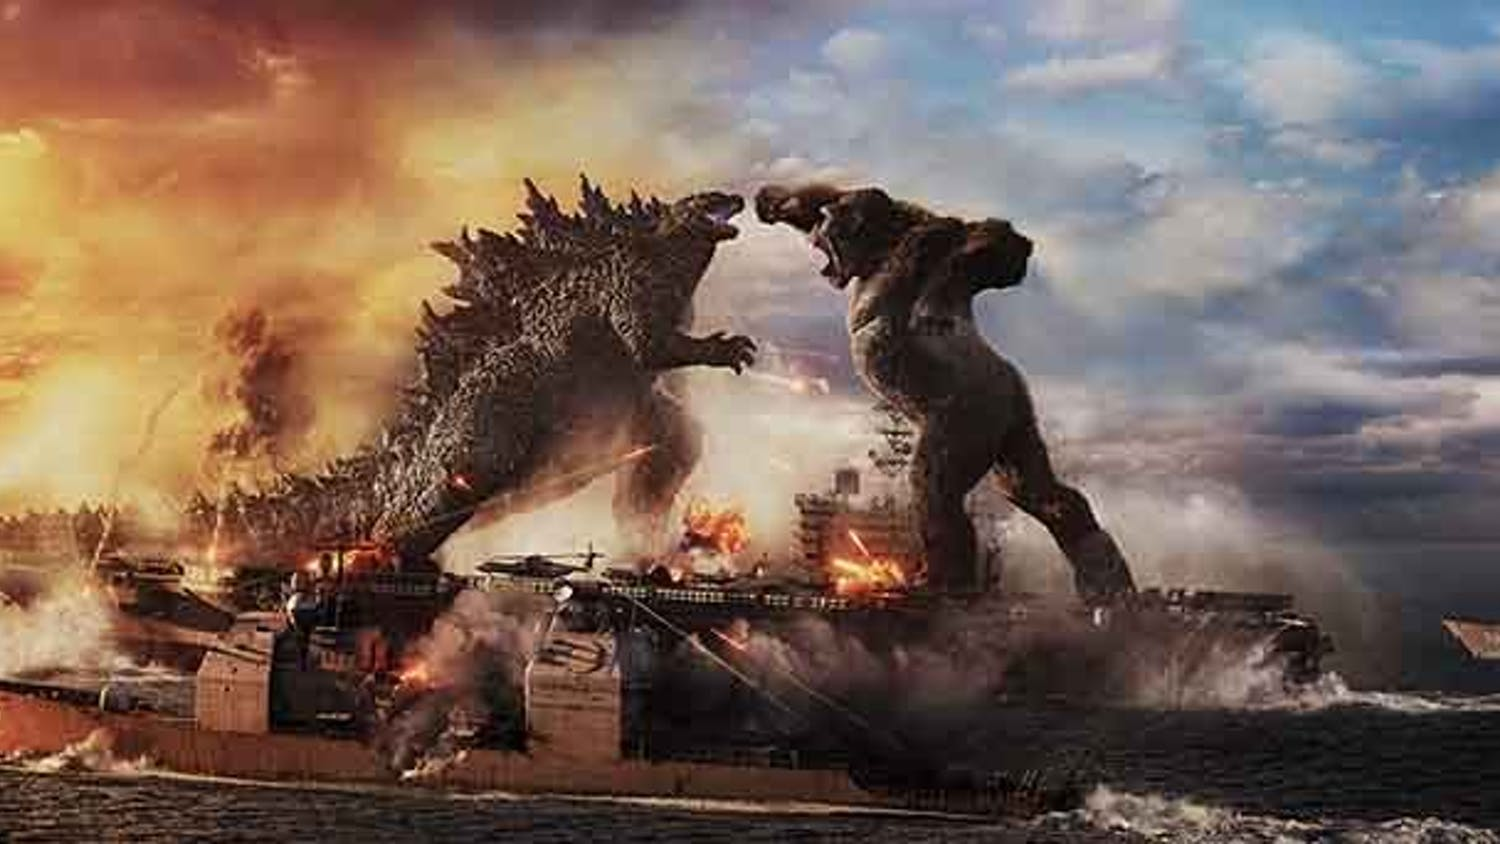 """Godzilla battles Kong in Warner Bros. Pictures' and Legendary Pictures' action-adventure """"Godzilla vs. Kong."""""""